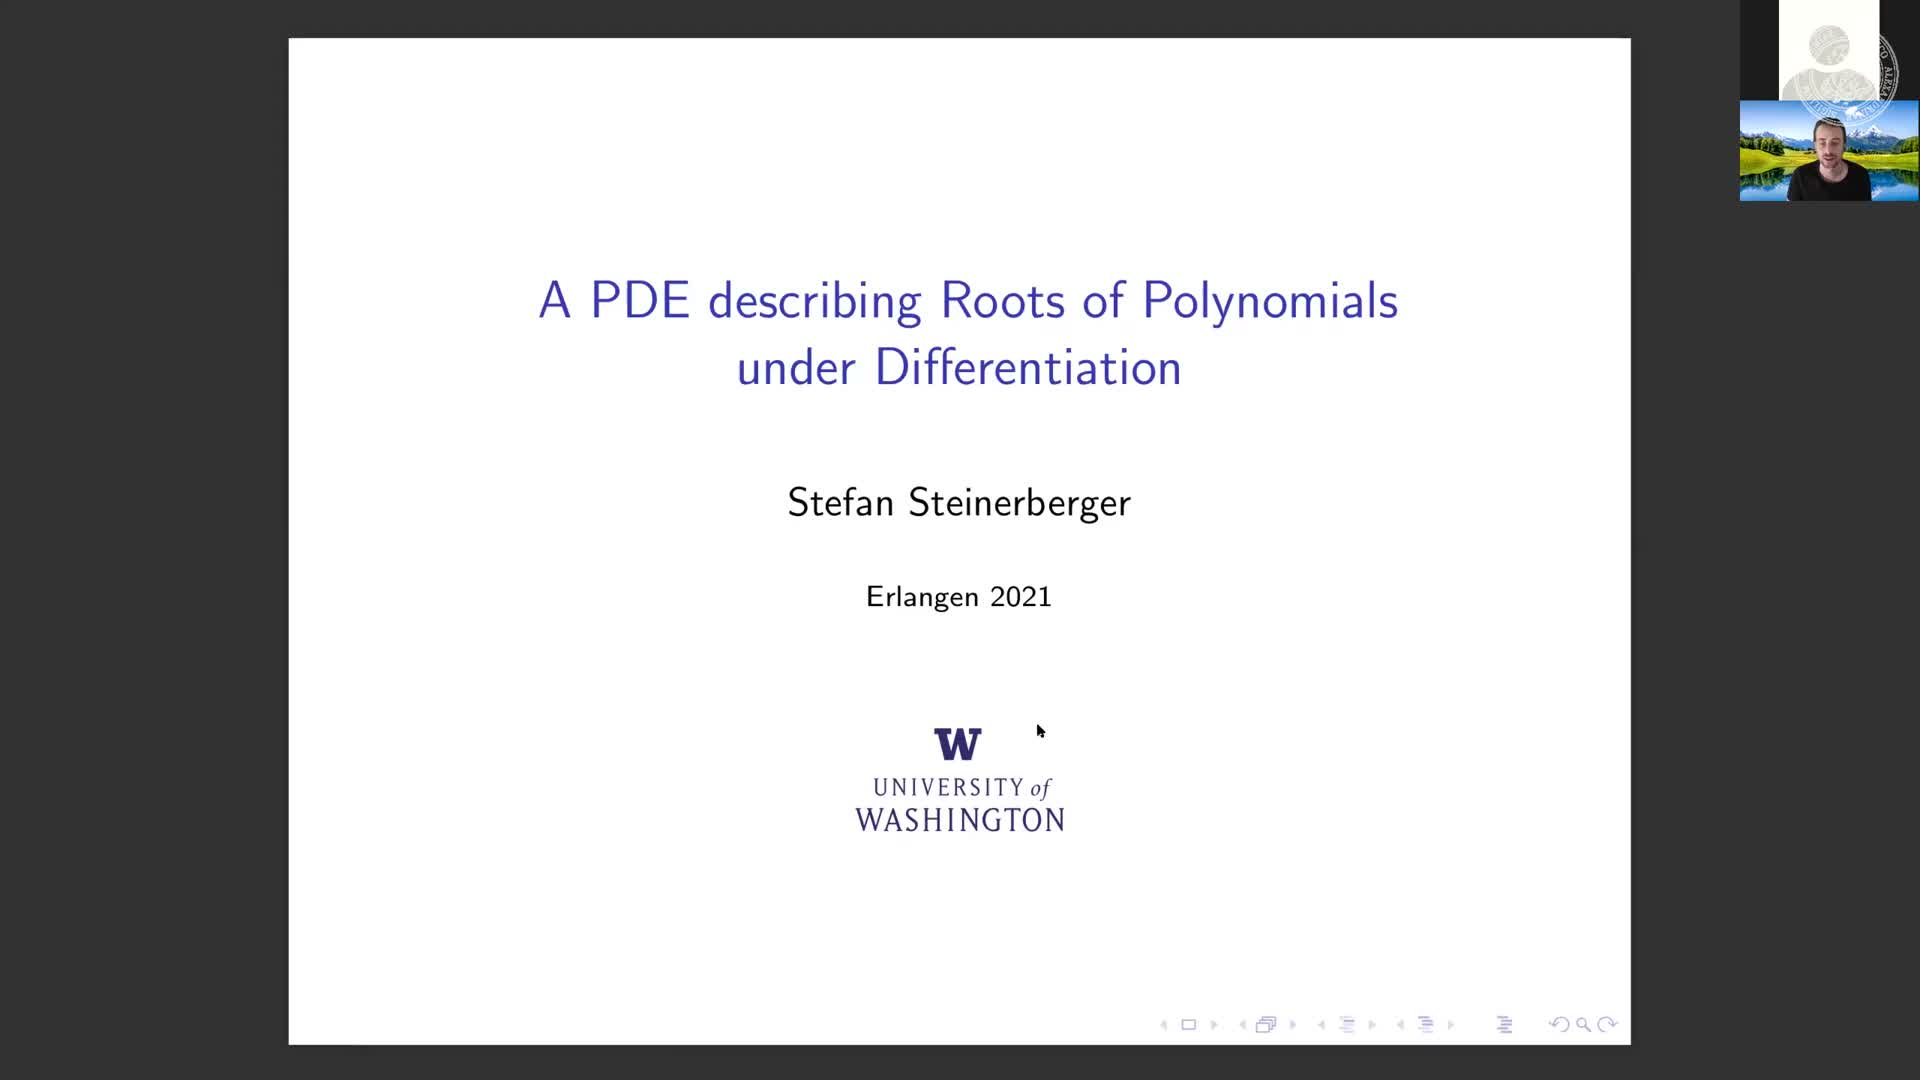 A PDE describing Roots of Polynomials under Differentiation (Stefan Steinerberger, University of Washington) preview image